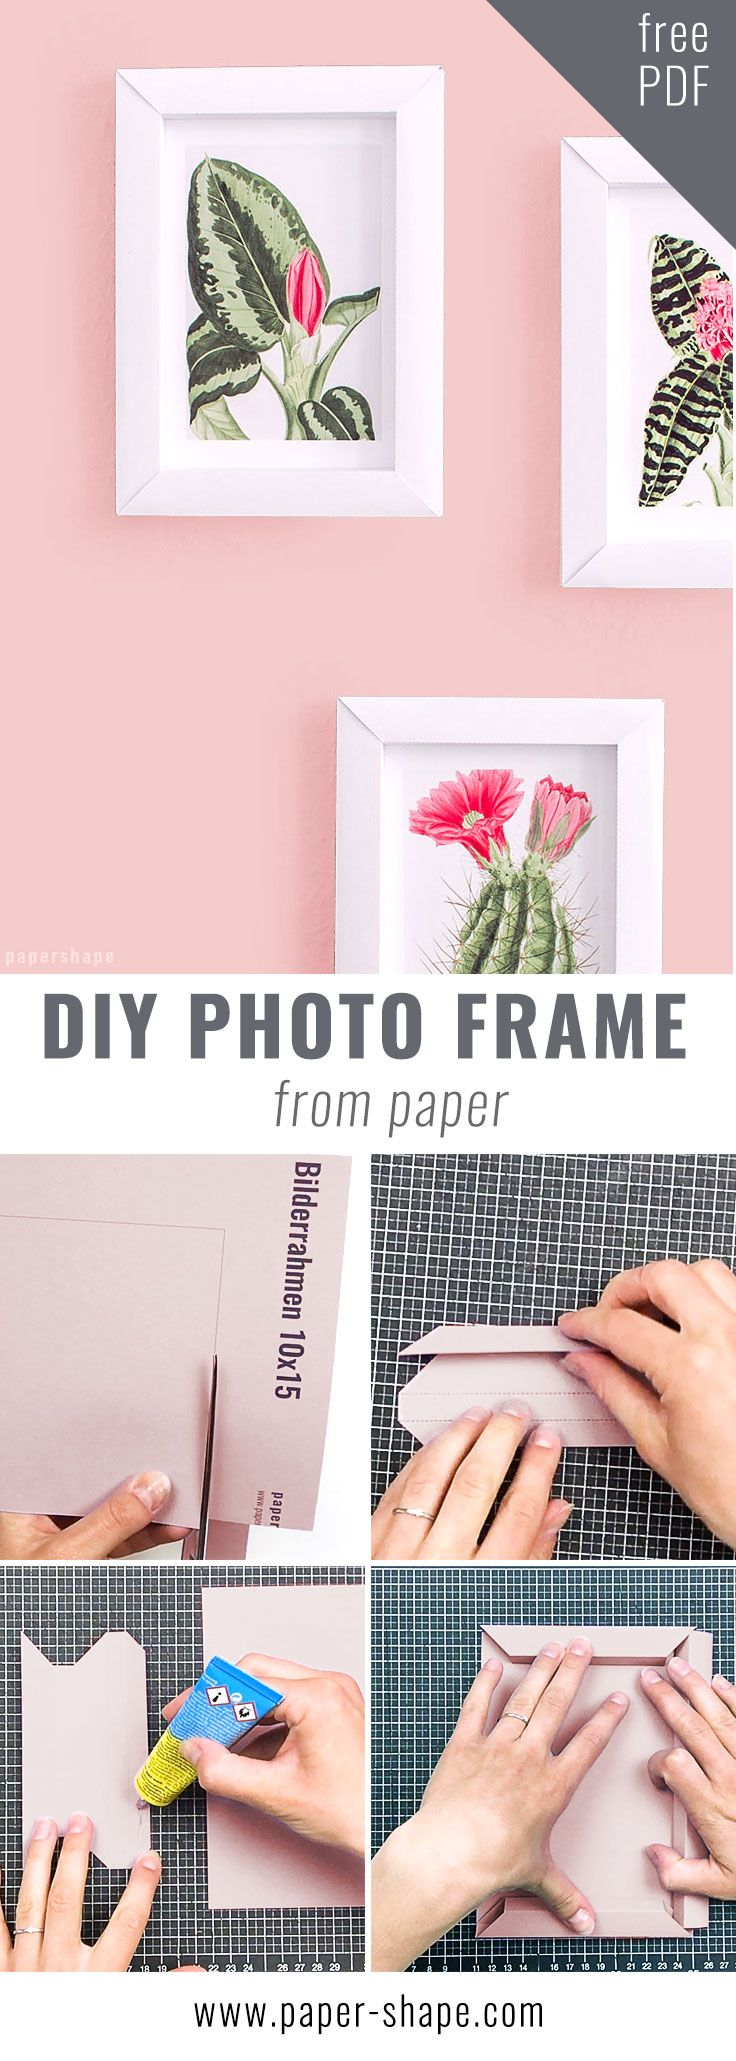 401 best DIY Paper Crafts images on Pinterest | Diy paper, Paper and ...